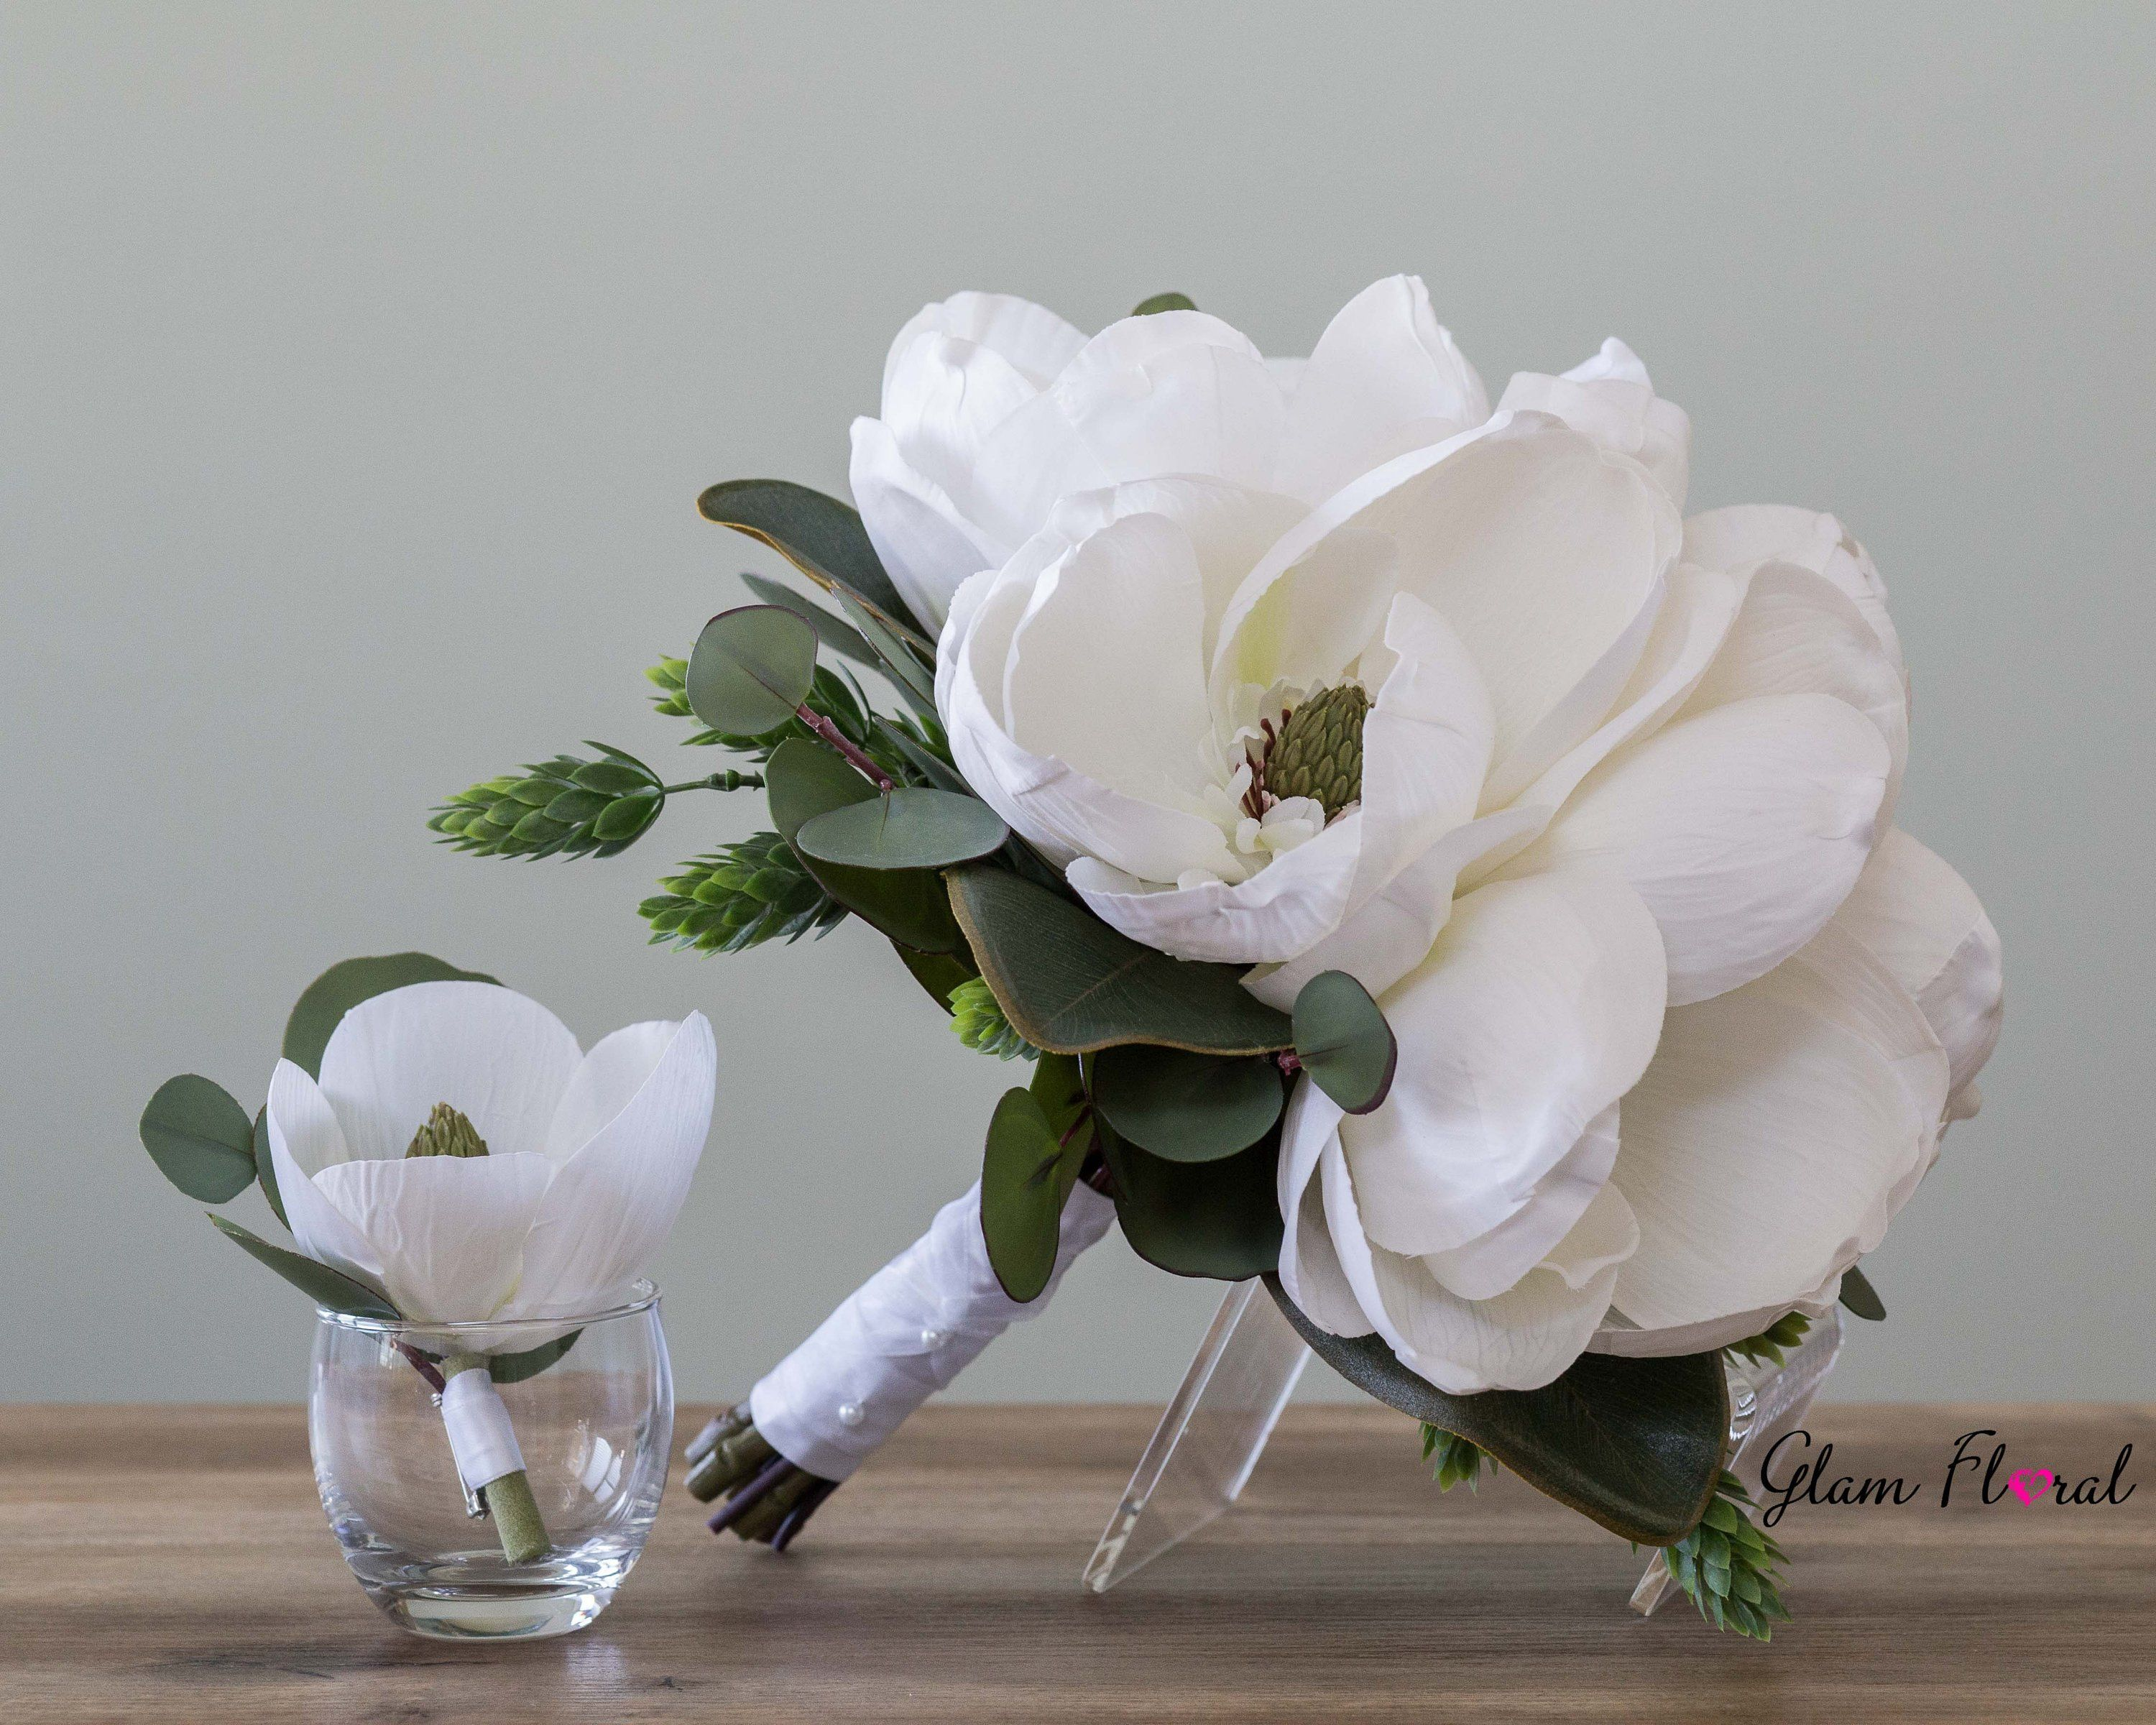 White Magnolia Wedding Bouquet Silk Bridal Bouquet Boutonniere Set Real Touch Flowers Magnolias H Flower Bouquet Wedding Wedding Bouquets Magnolia Wedding